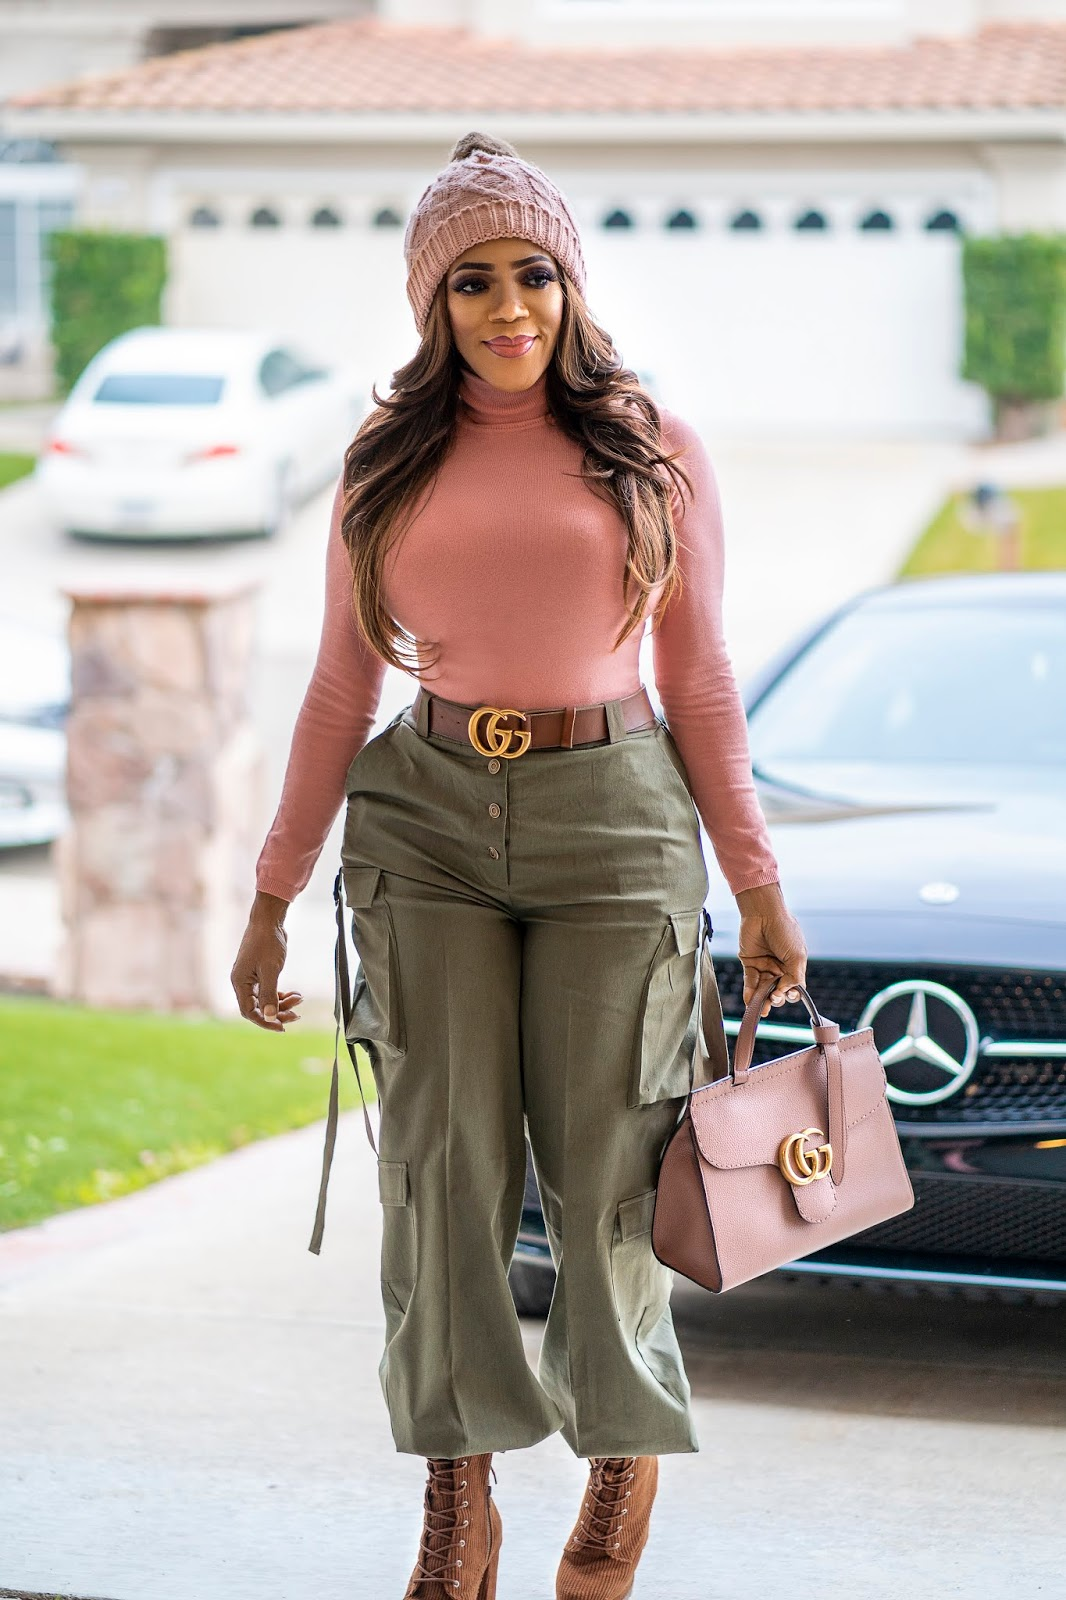 Cargo Pants... A Modern Take on the Pocketed Trend